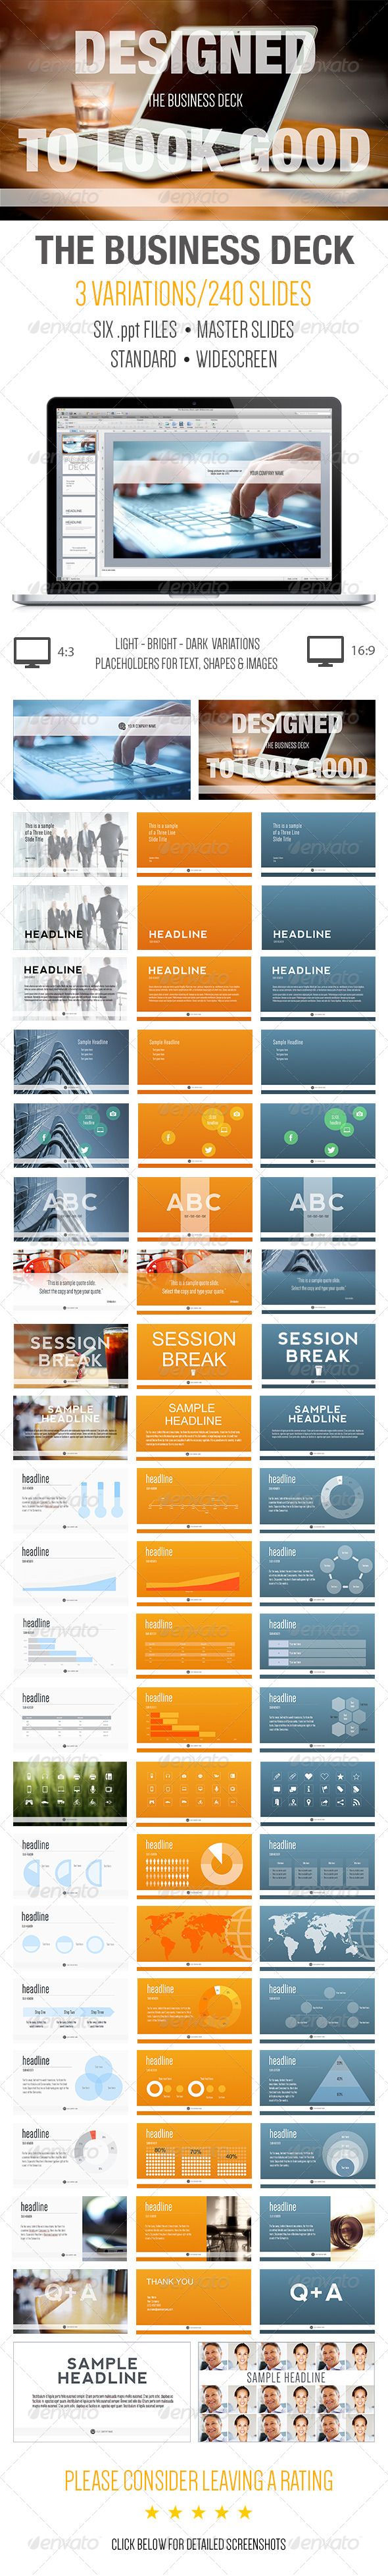 The business deck a powerpoint template pinterest template the business deck a powerpoint template flashek Image collections